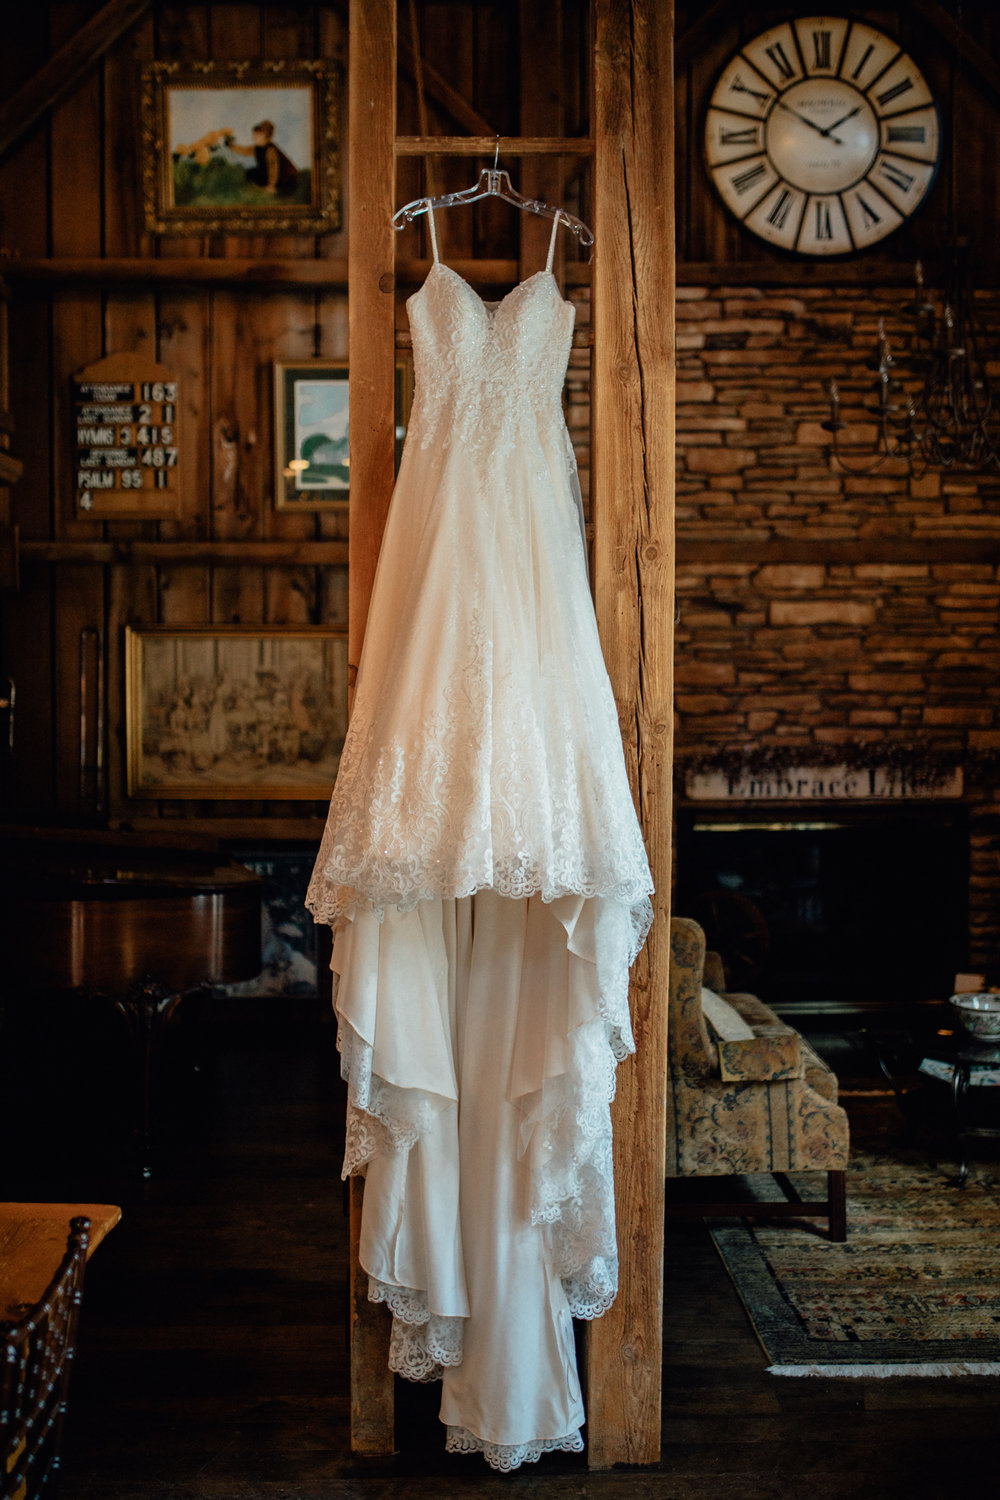 Bride's dress hanging in barn